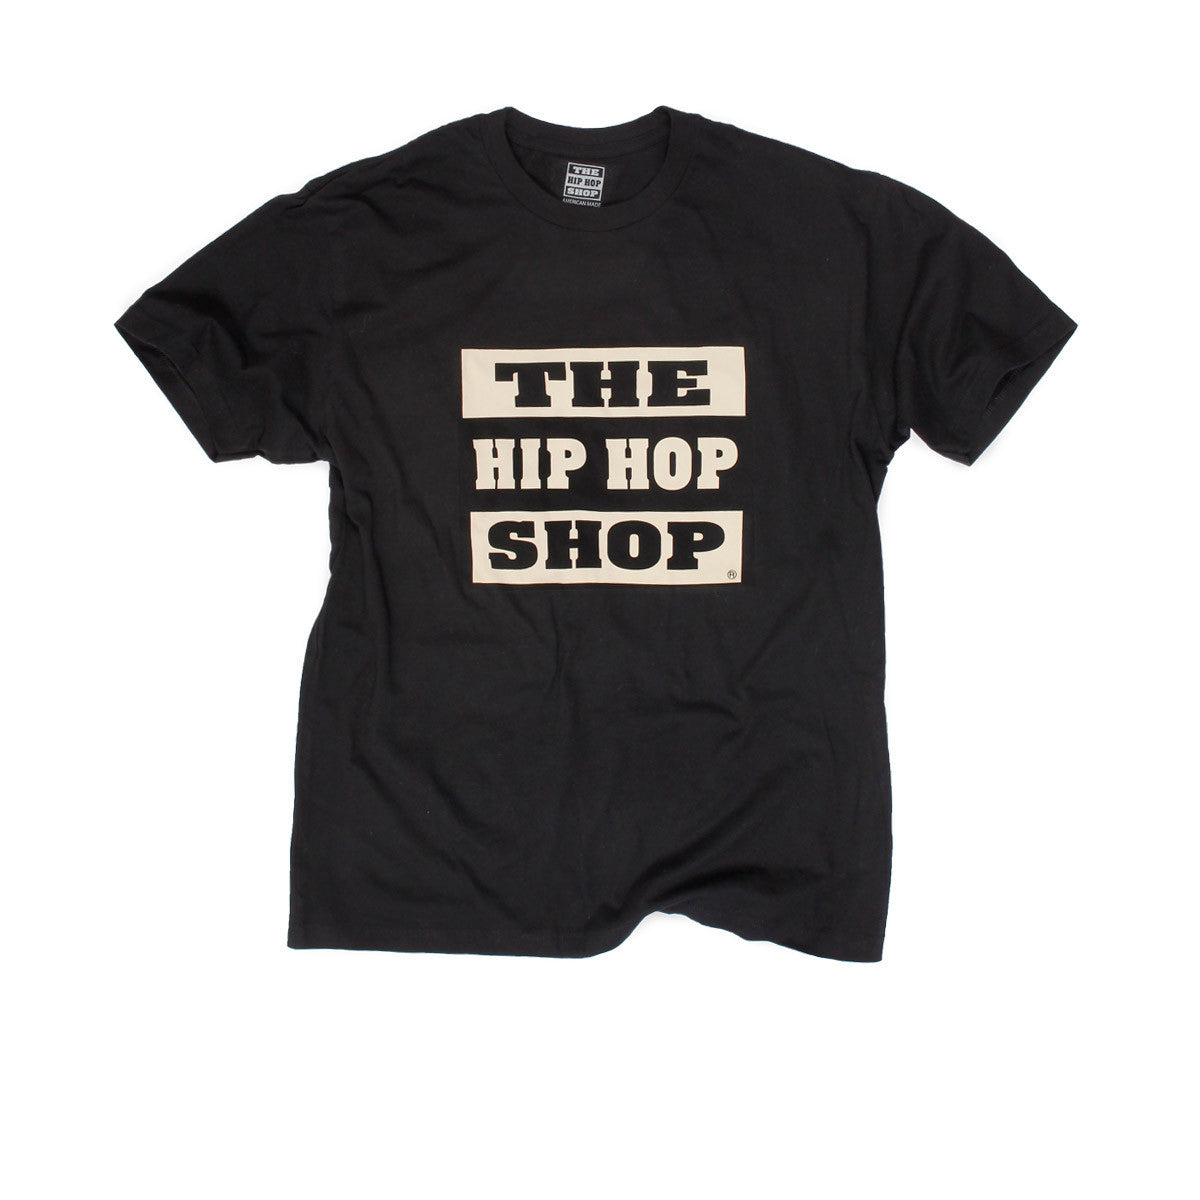 The Hip Hop Shop black logo t-shirt